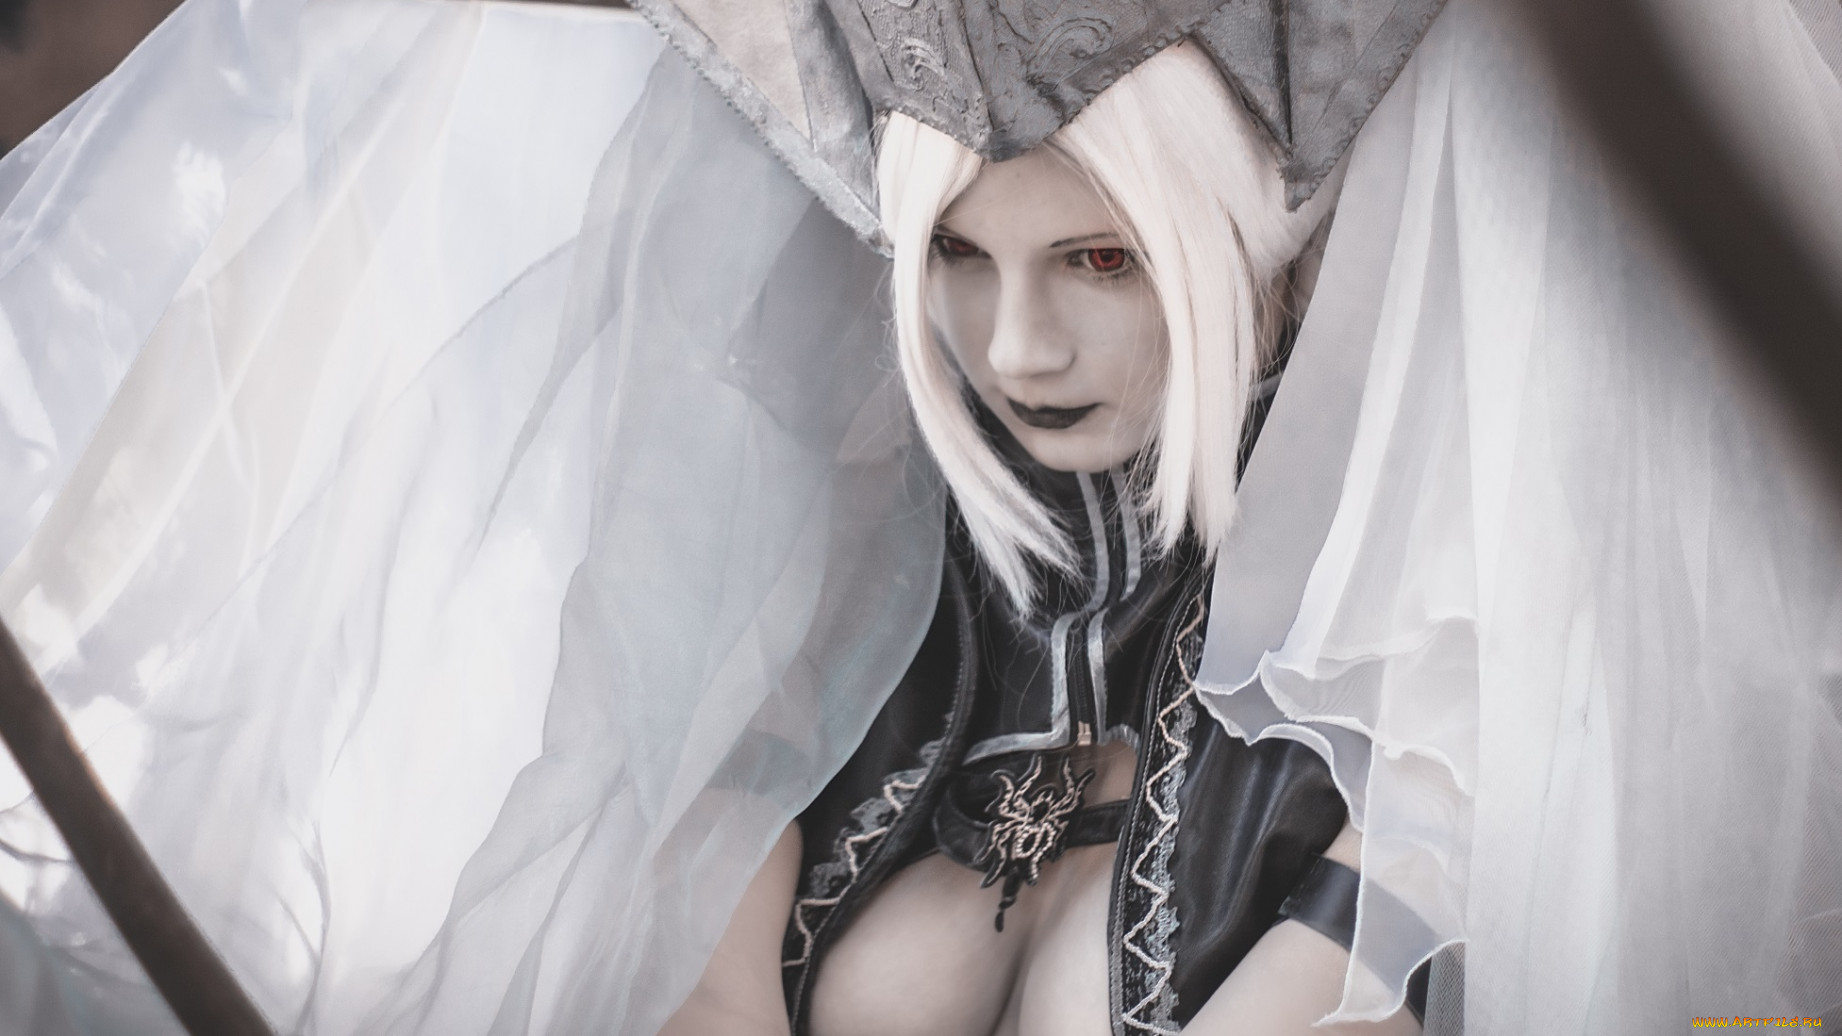 Lineage 2 cosplay porno erotica galleries